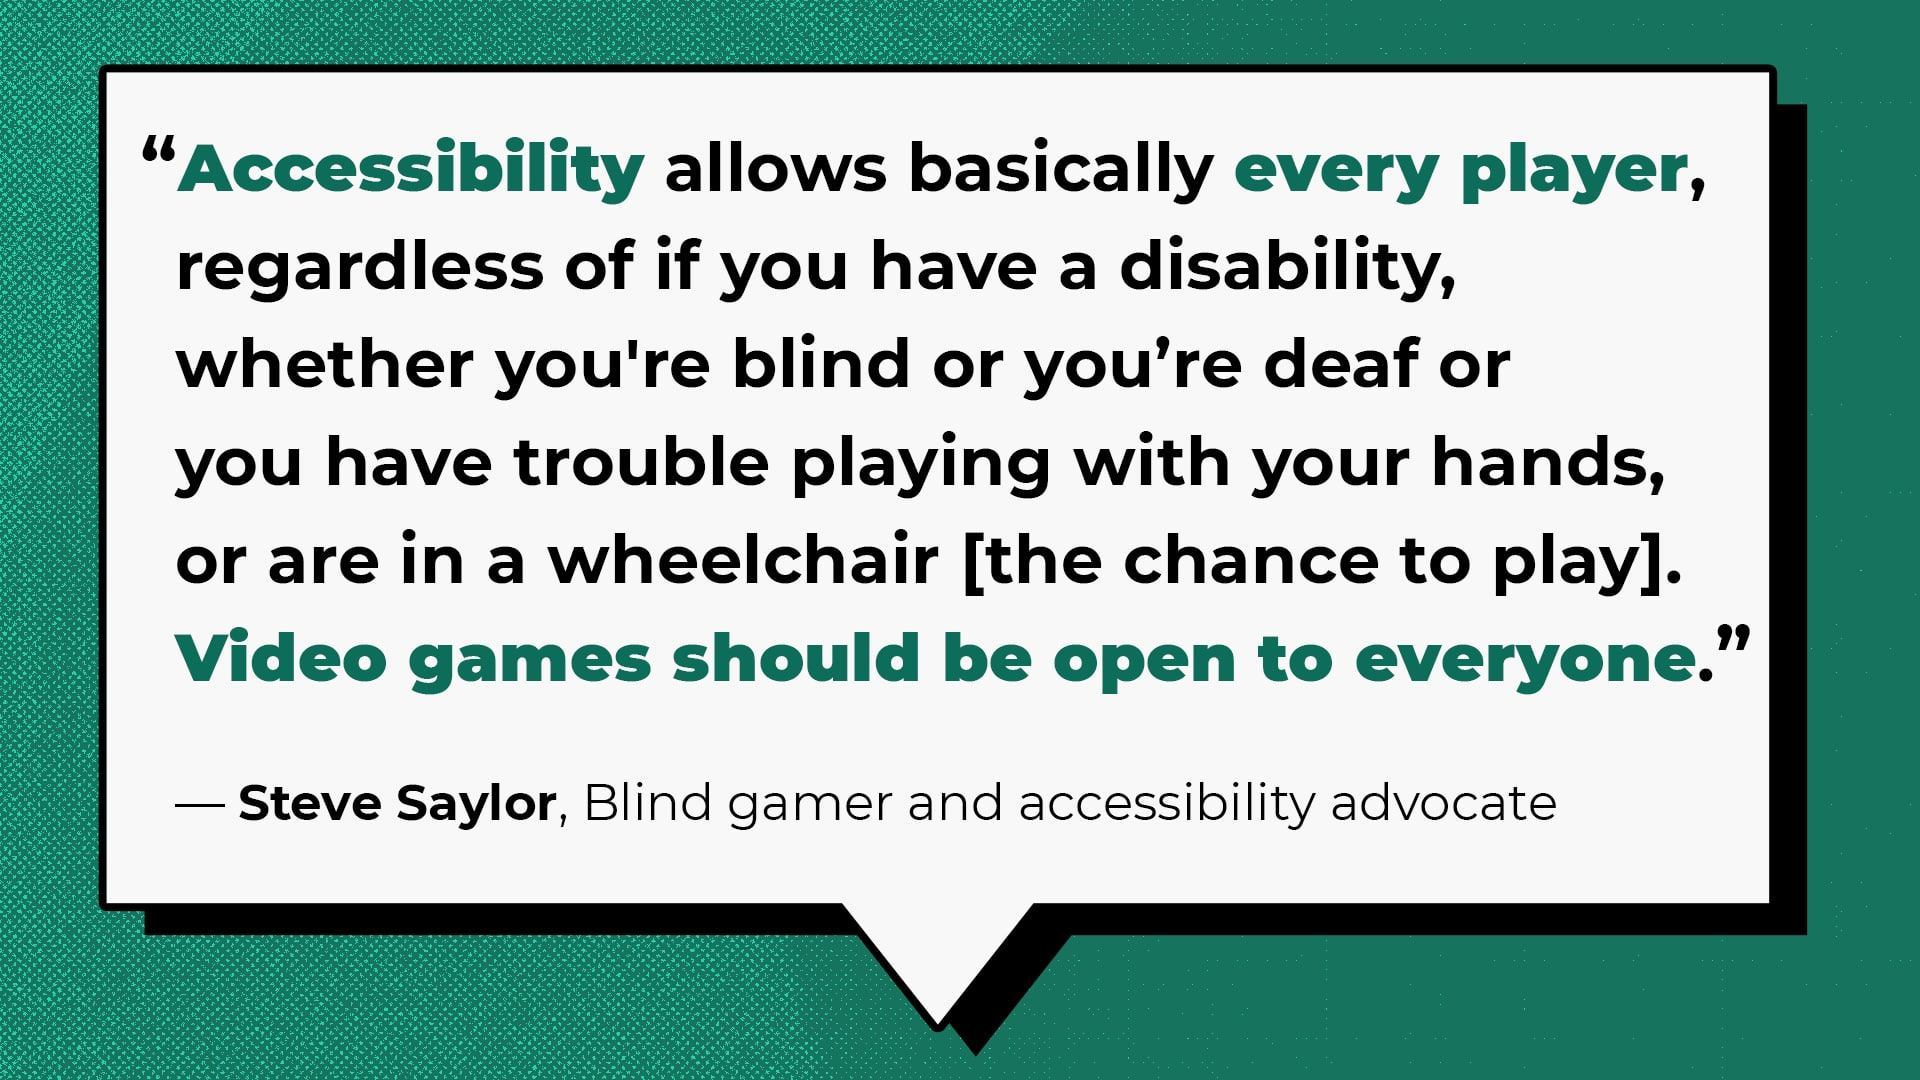 Accessibility allows basically every player,  regardless of if you have a disability,  whether you're blind or you're deaf or  you have trouble playing with your hands,  or are in a wheelchair [the chance to play].  Video games should be open to everyone.   Steve Saylor, Blind gamer and accessibility advocate